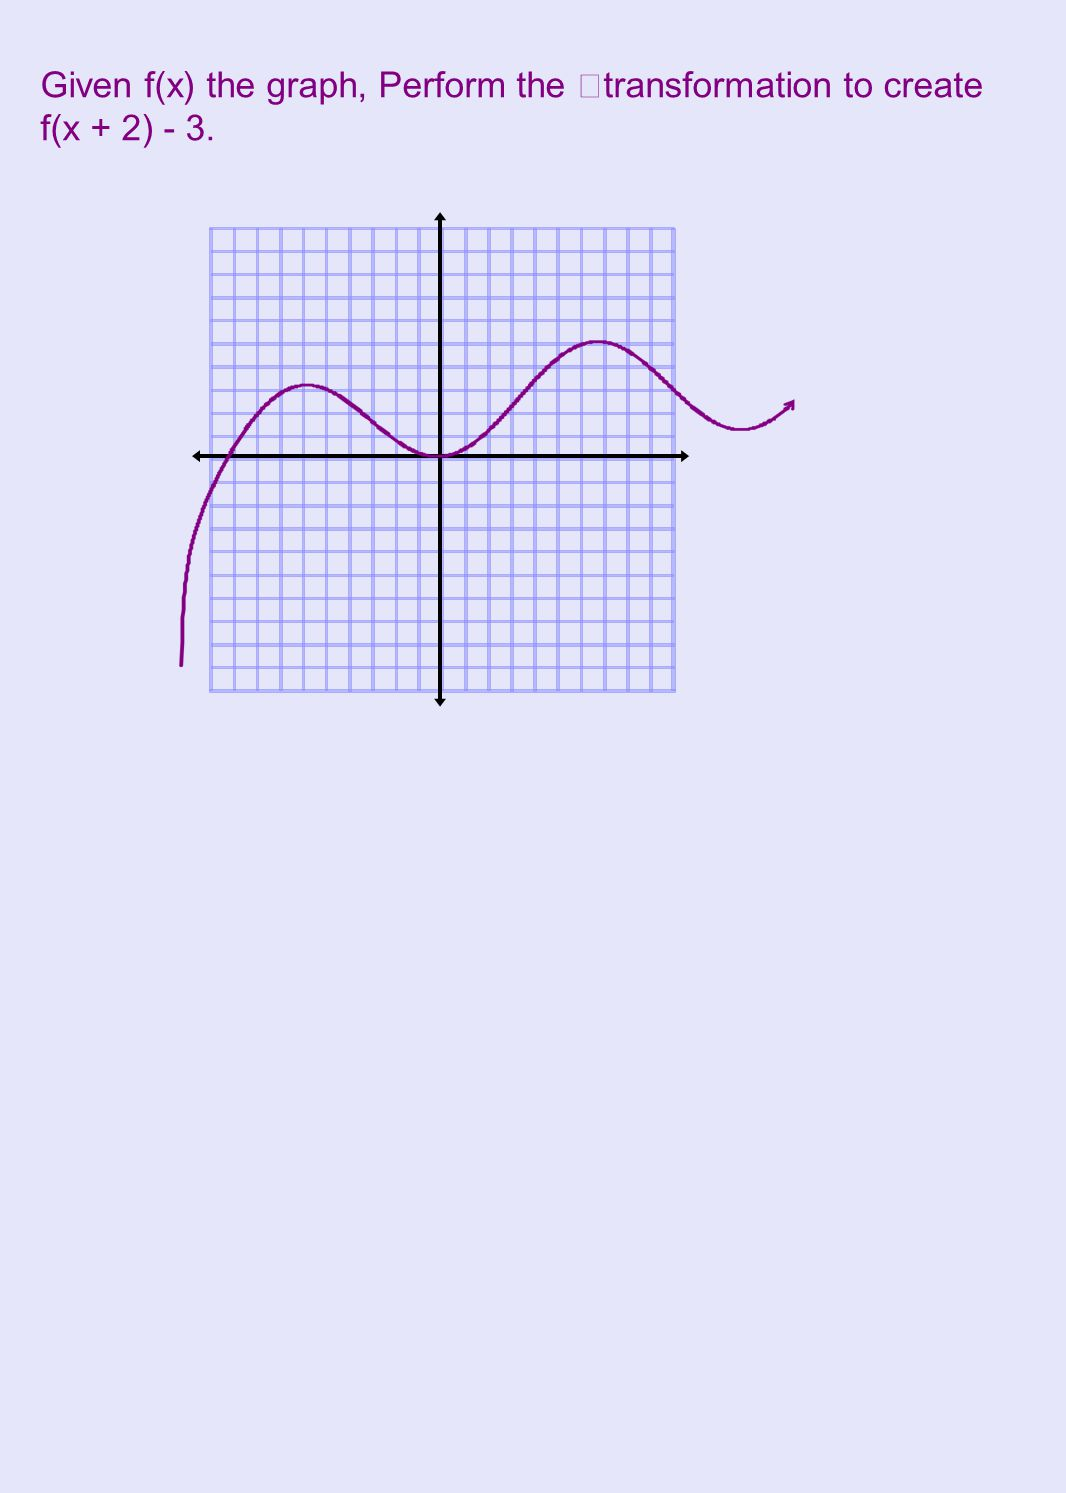 Given f(x) the graph, Perform the transformation to create f(x + 2) - 3.